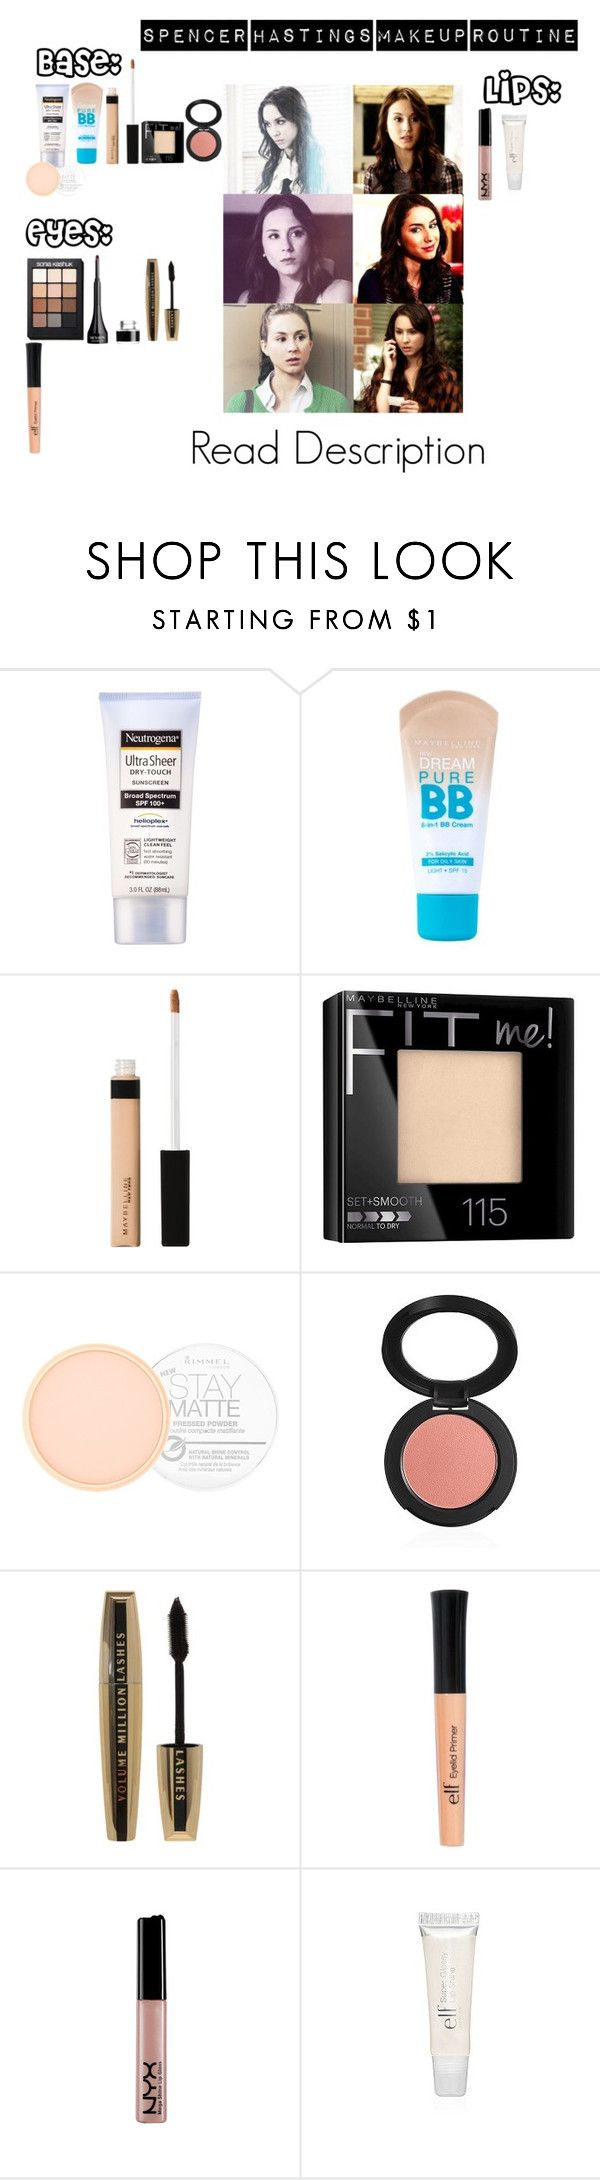 """Spencer Hastings's Makeup Routine"" by akirarae ❤ liked on Polyvore featuring beauty, Neutrogena, Maybelline, Rimmel, Sonia Kashuk and L'Oréal Paris"